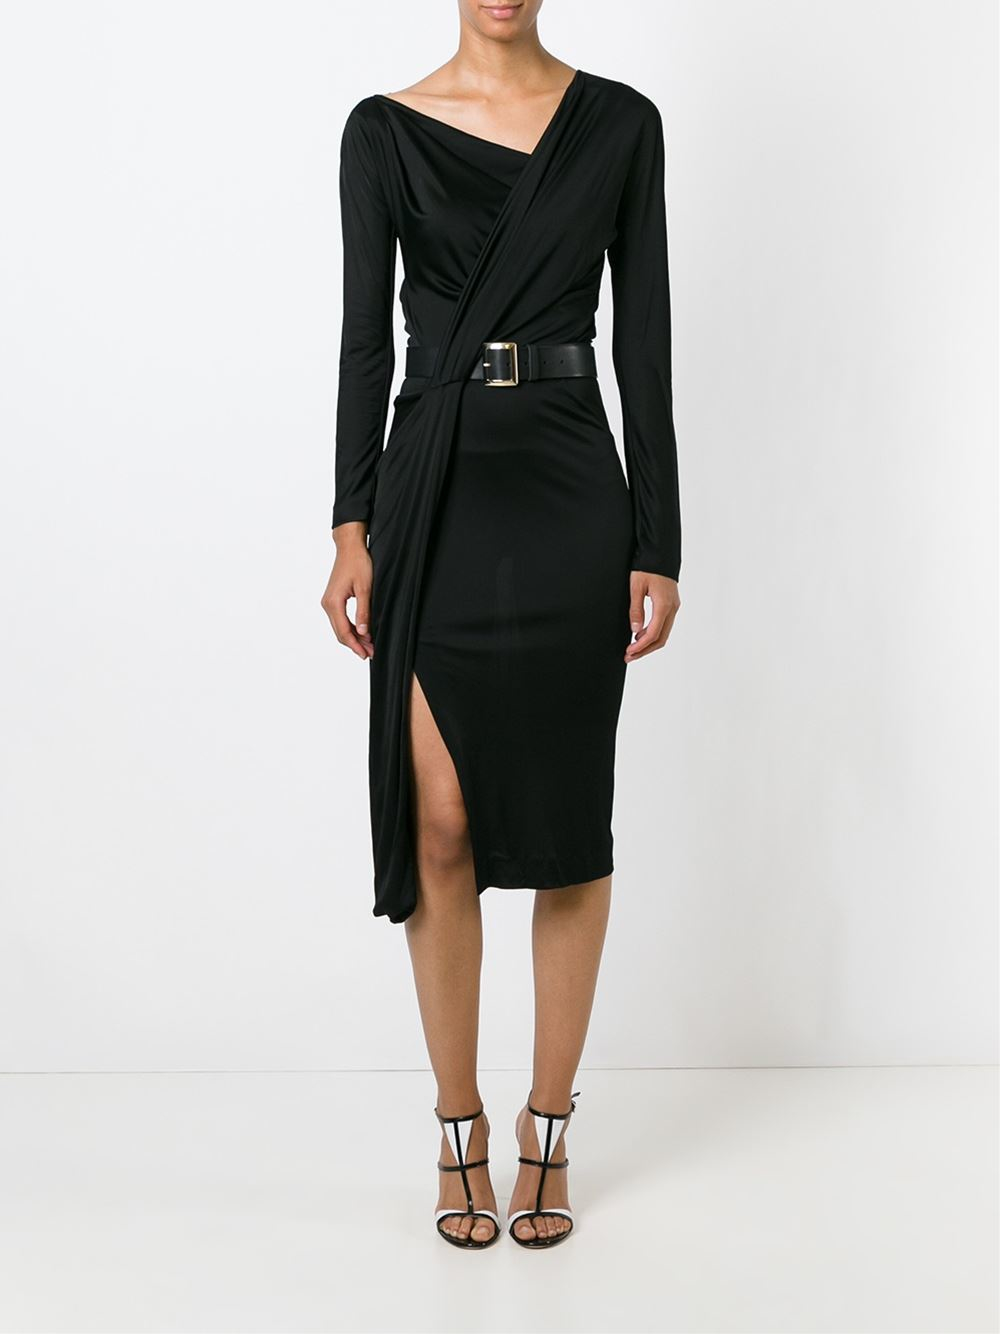 dsquared 178 belted dress in black lyst